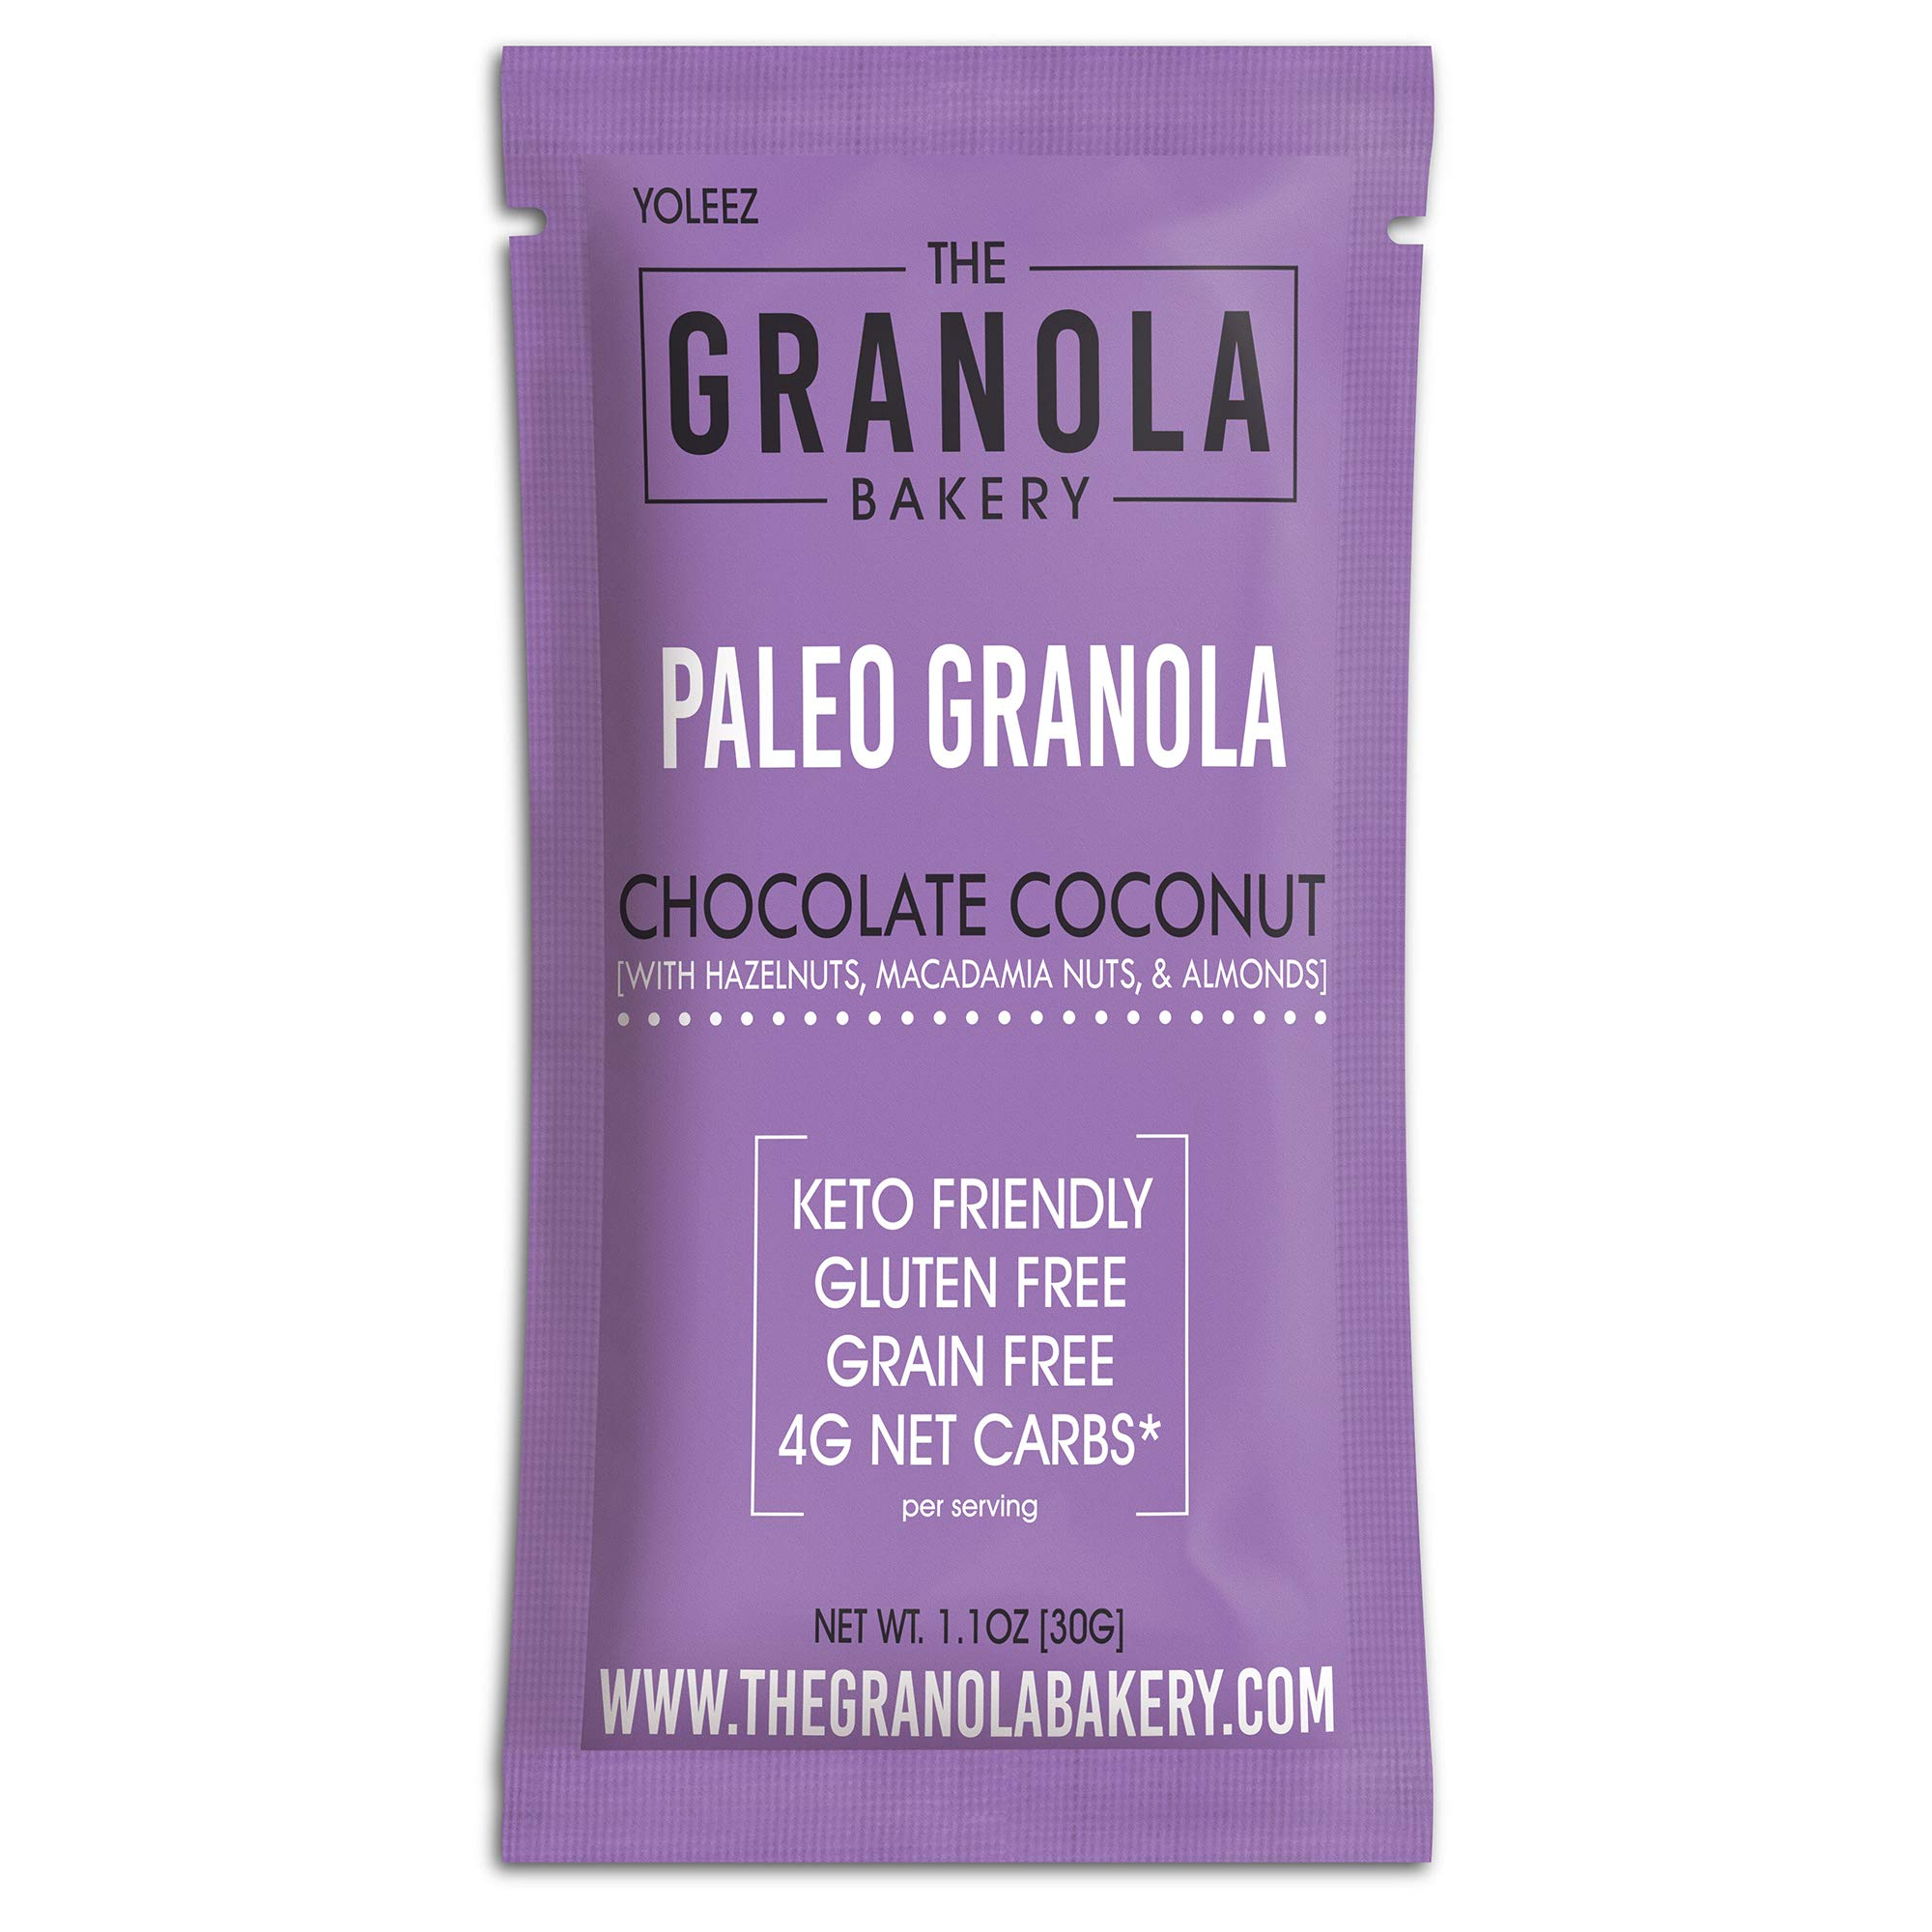 Granola Bakery - Keto Chocolate Paleo Granola Cereal, 4g Net Carb, 10 Packets - Healthy Low Carb Fat Bomb Snack, Gluten Free, Grain Free, Organic Natural Ingredients